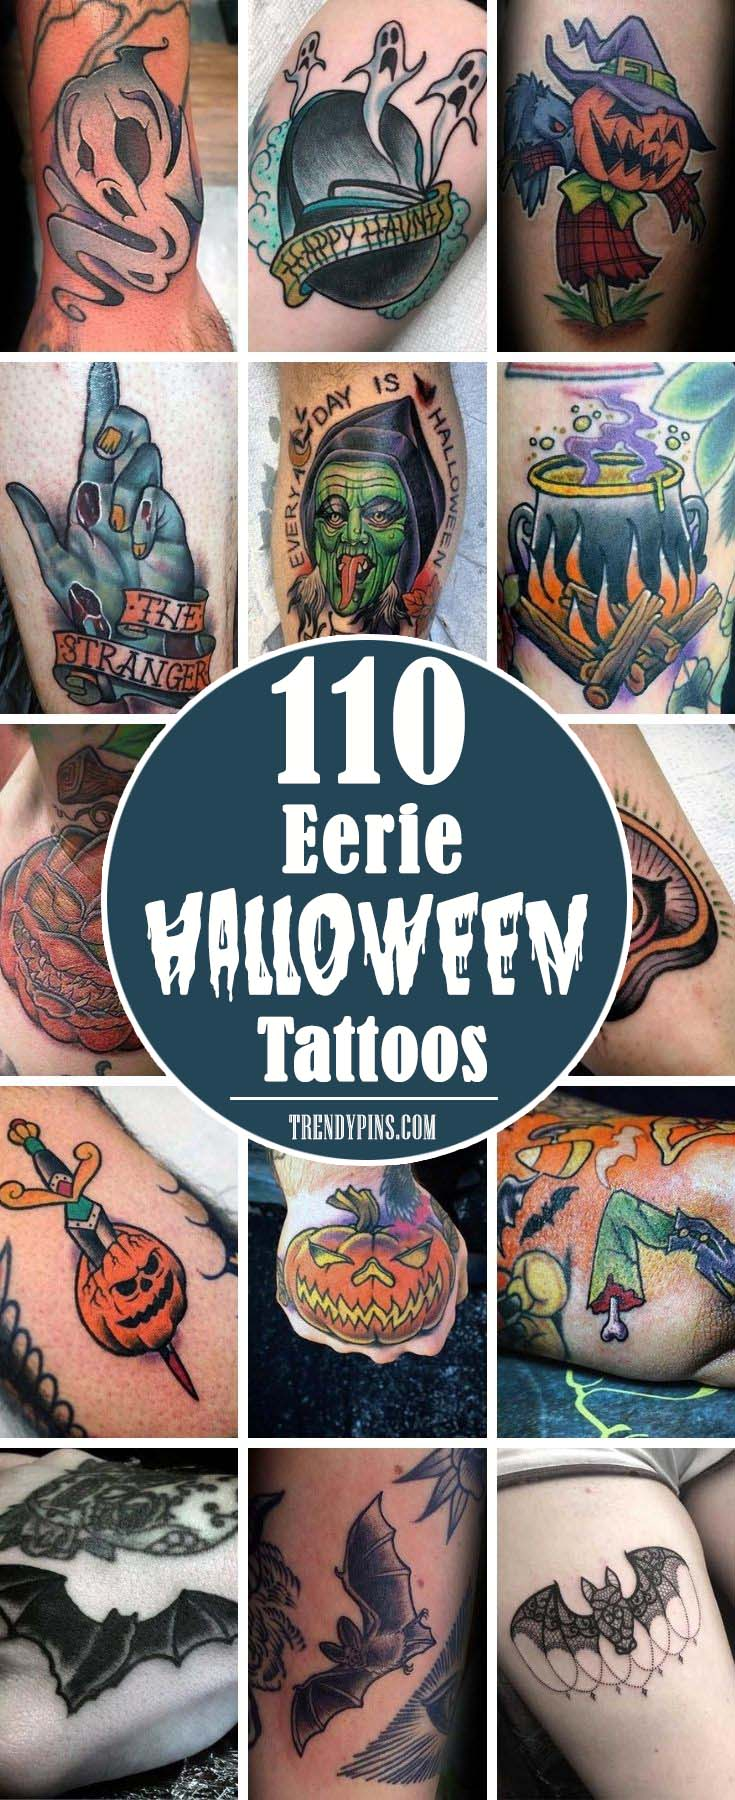 There is no better way to commemorate Halloween than by getting a Halloween-themed tattoo.